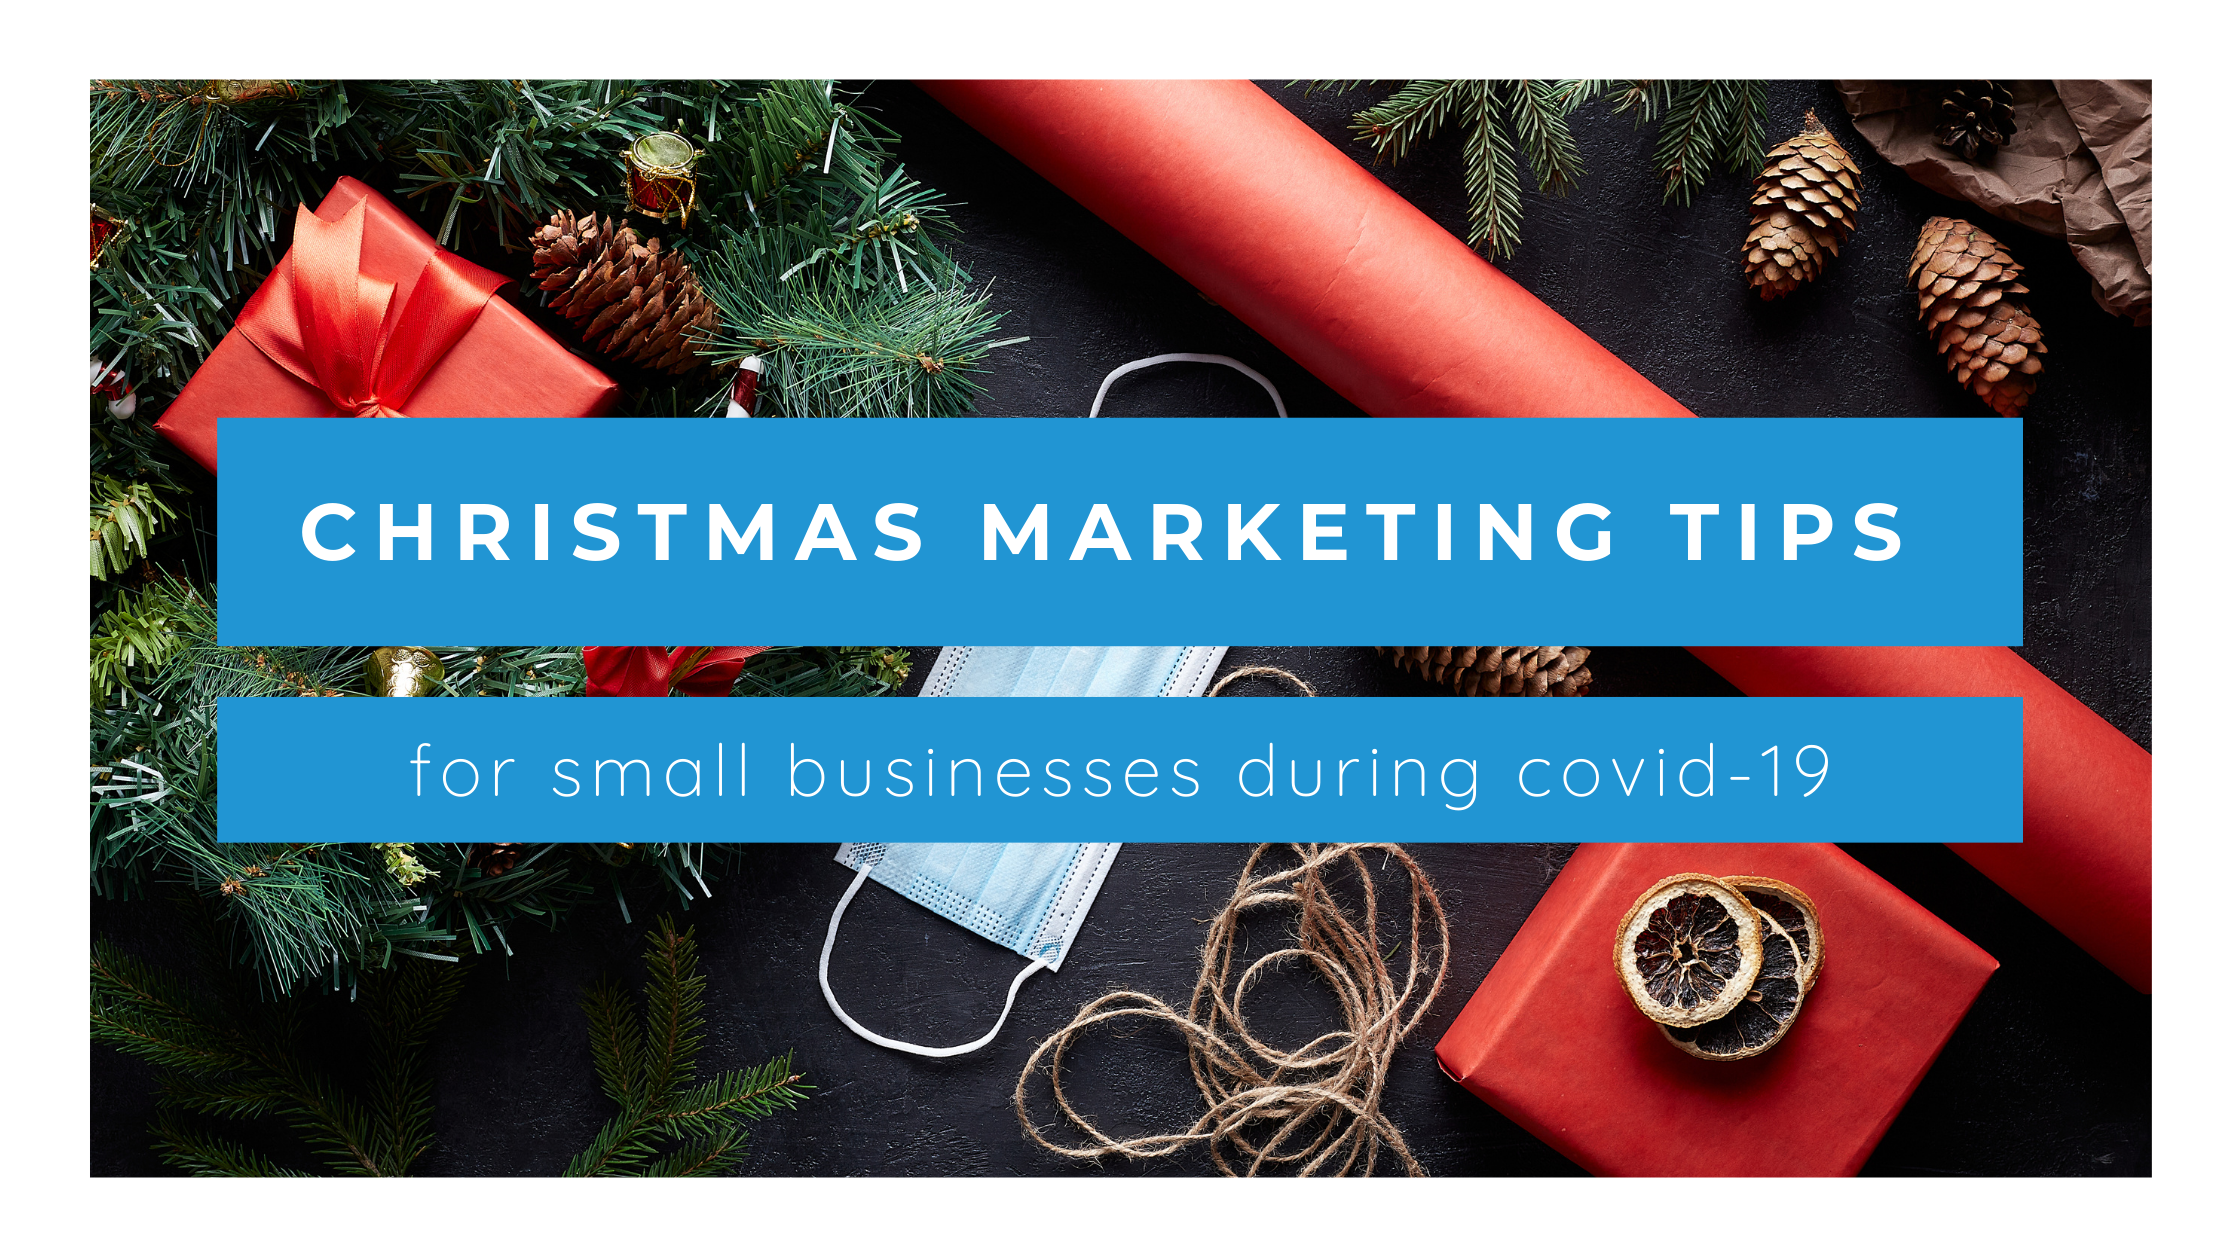 Christmas marketing for small businesses during covid-19